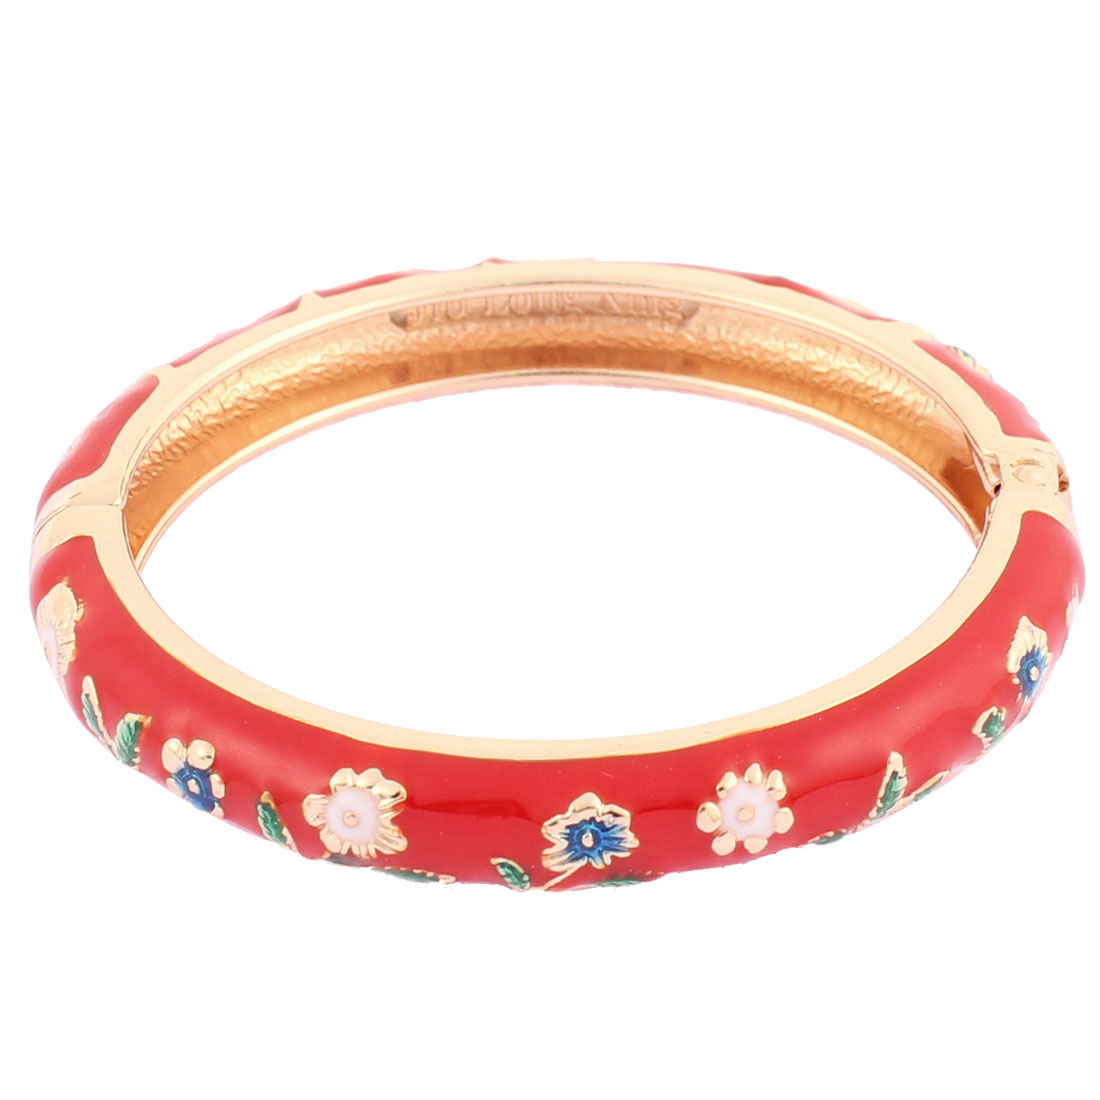 Girl Spring Closure Flowers Enamel Round Wrist Bracelet Bangle Red